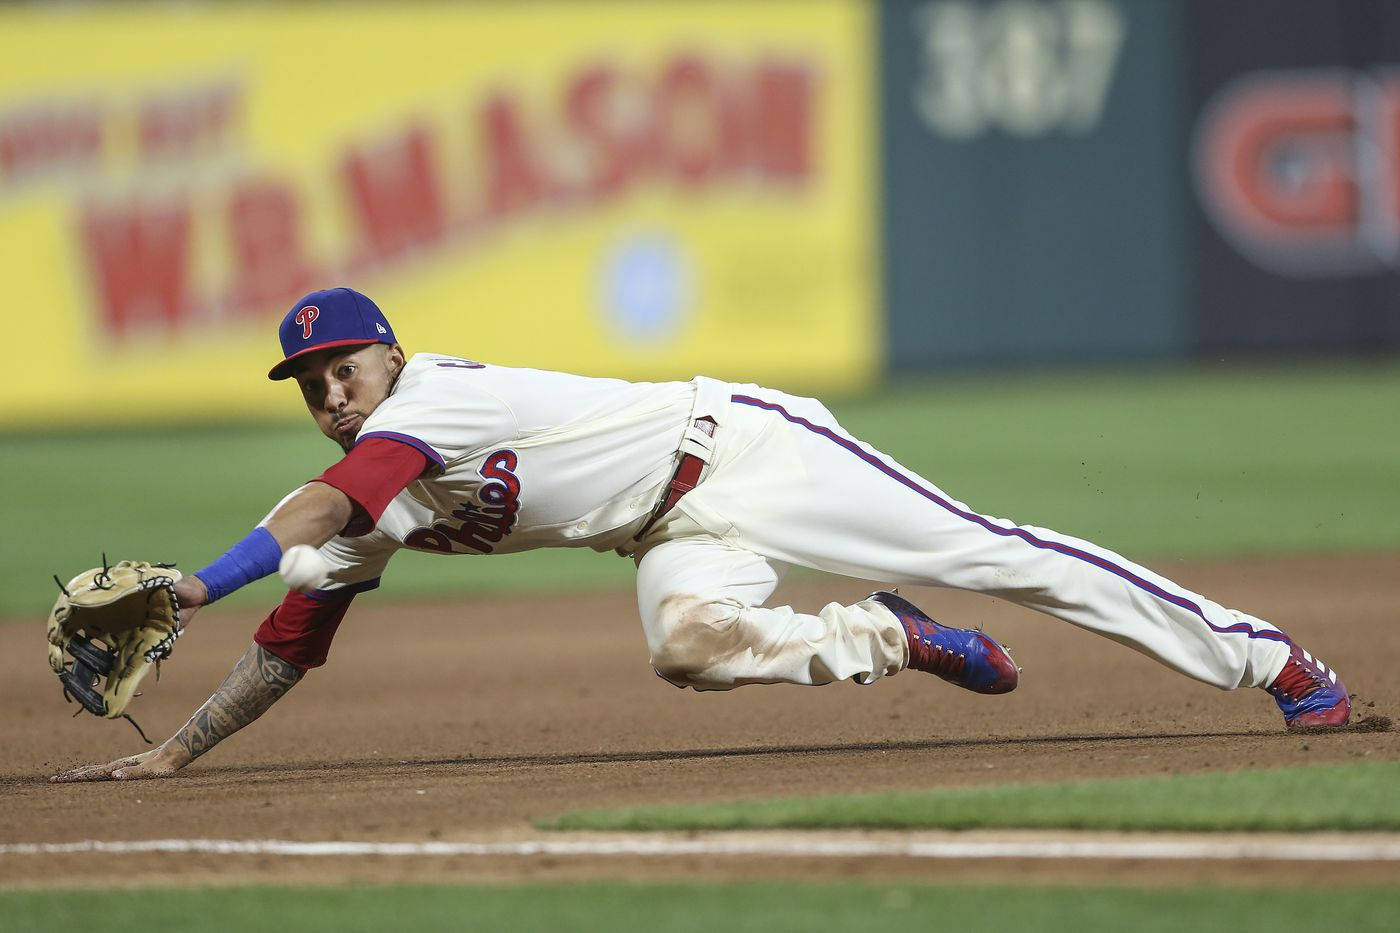 J.P. Crawford's defense at third base keeps Maikel Franco on Phillies' bench